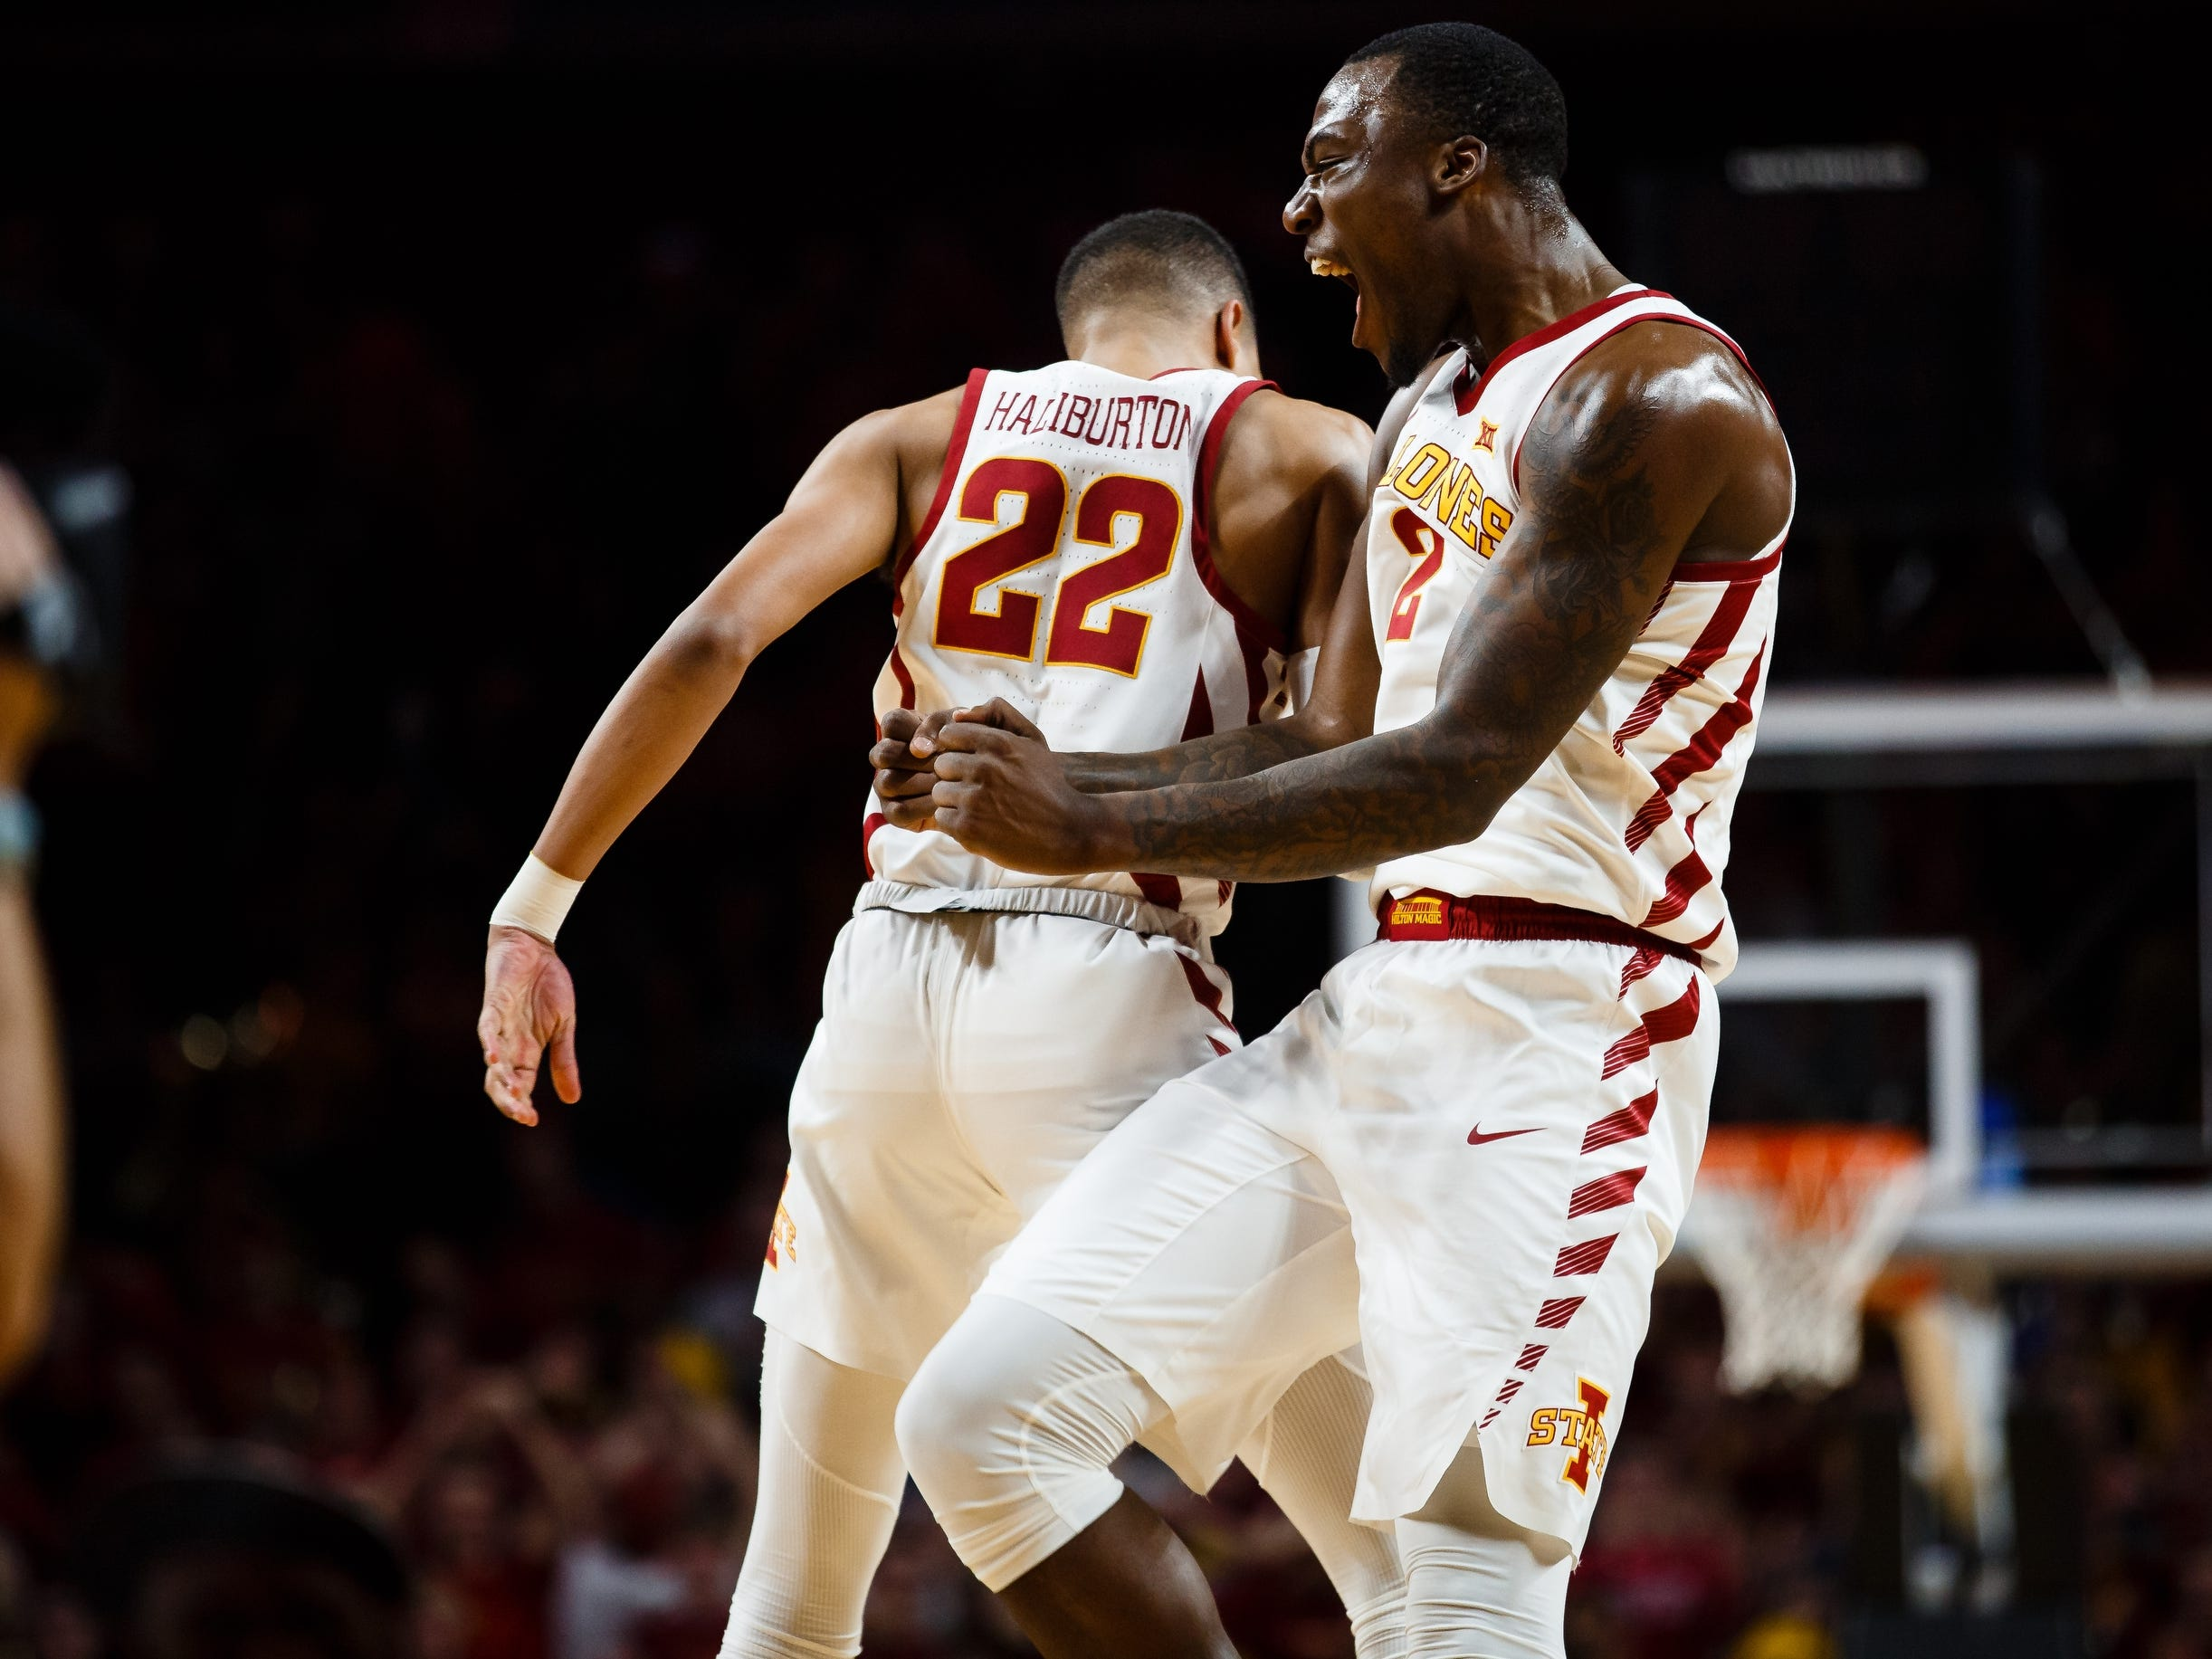 Iowa State's Tyrese Haliburton (22) celebrates with Iowa State's Cameron Lard (2) during the second half of their basketball game on Saturday, Jan. 5, 2019, in Ames. Iowa State would go on to beat Kansas 77-60.